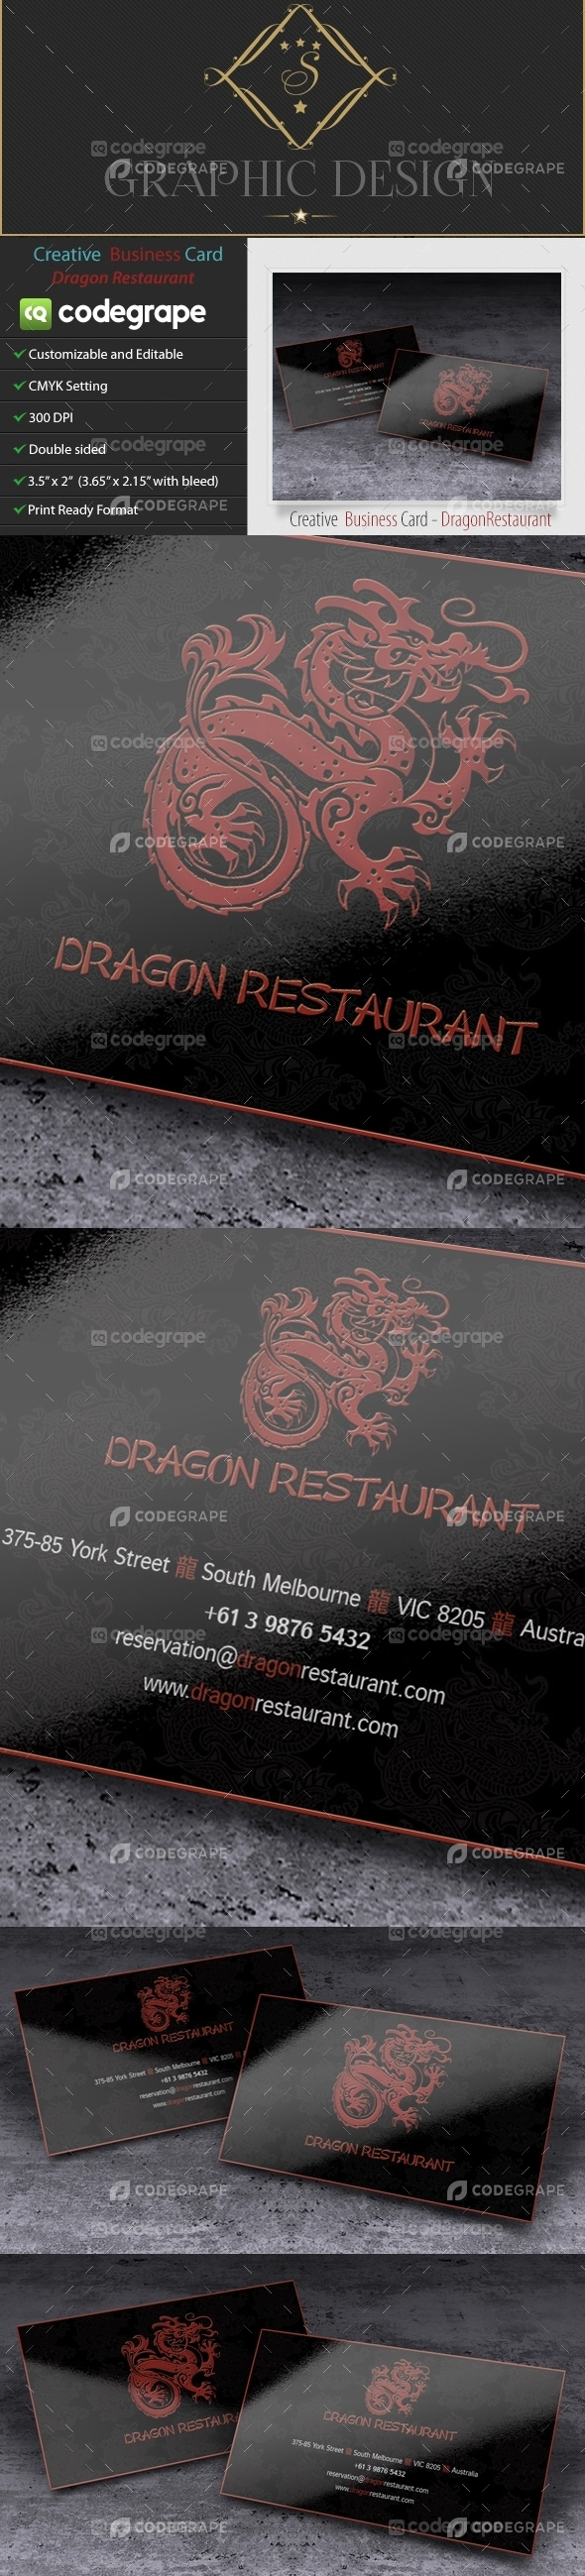 Creative Business Card - Dragon Restaurant